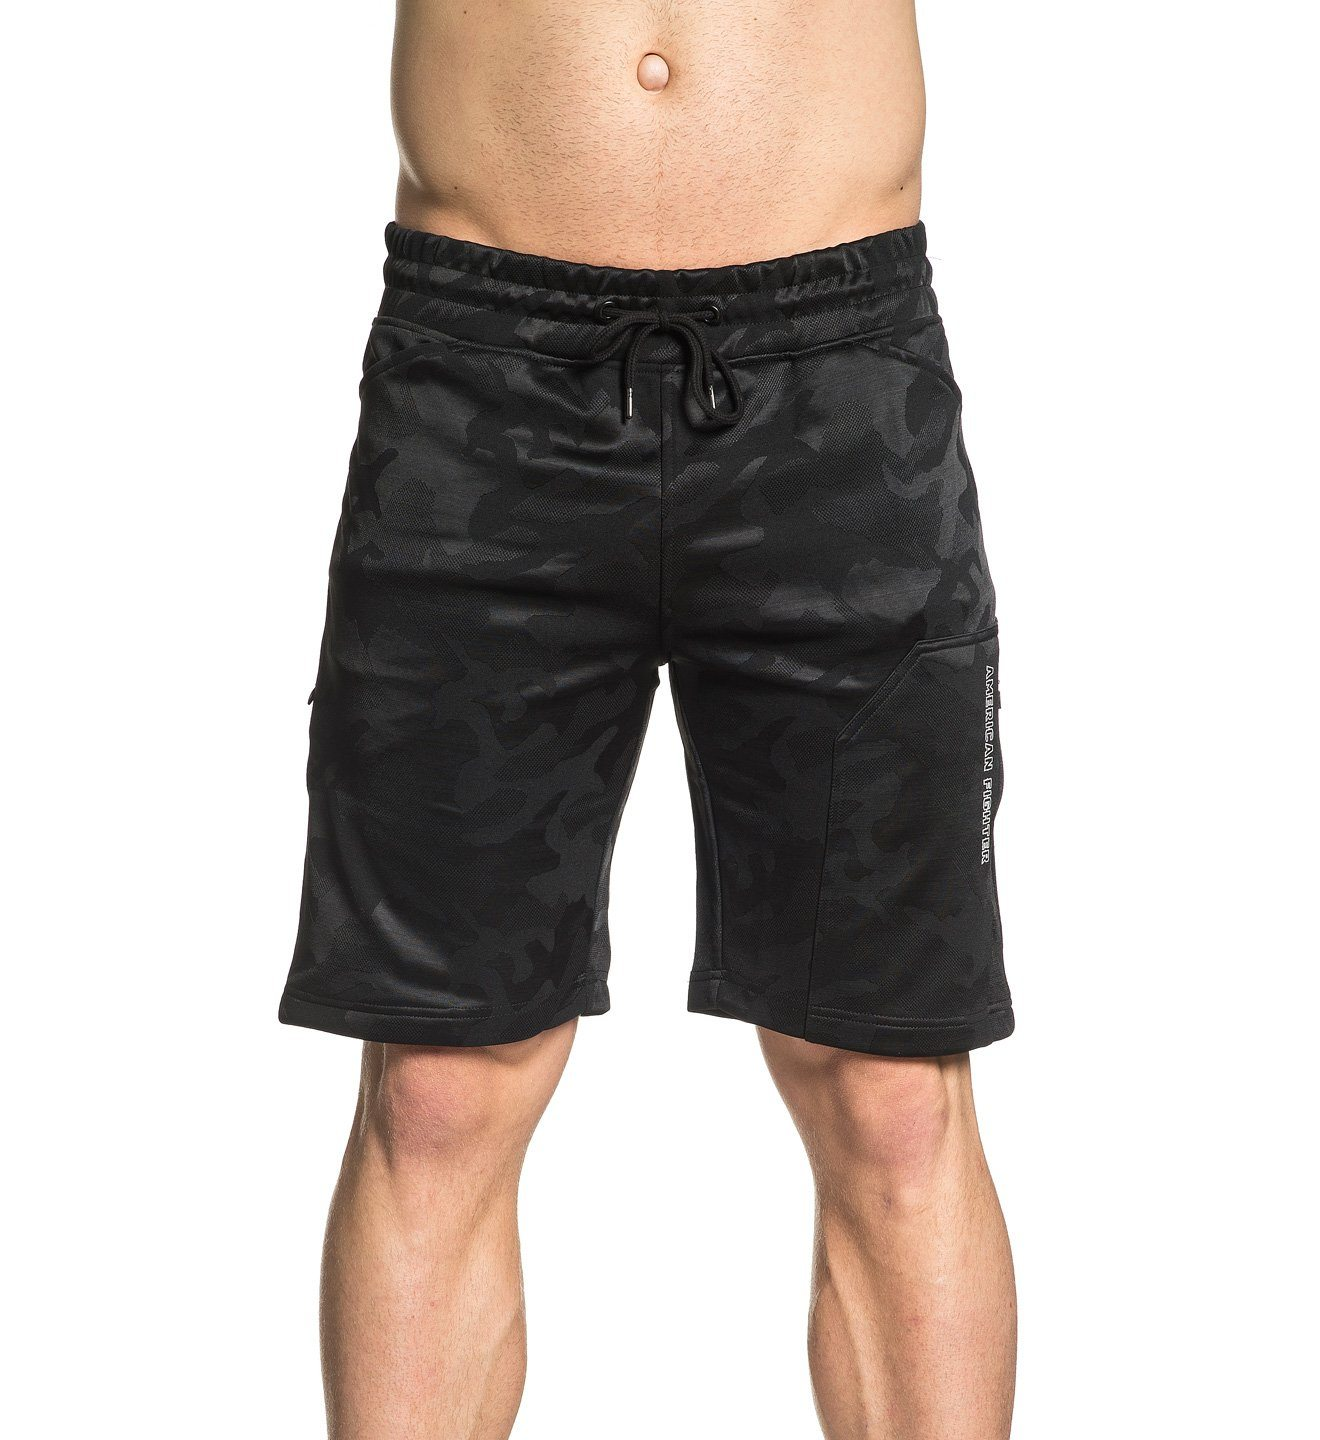 Rotations Sweat Short - Mens Shorts And Boardshorts - American Fighter